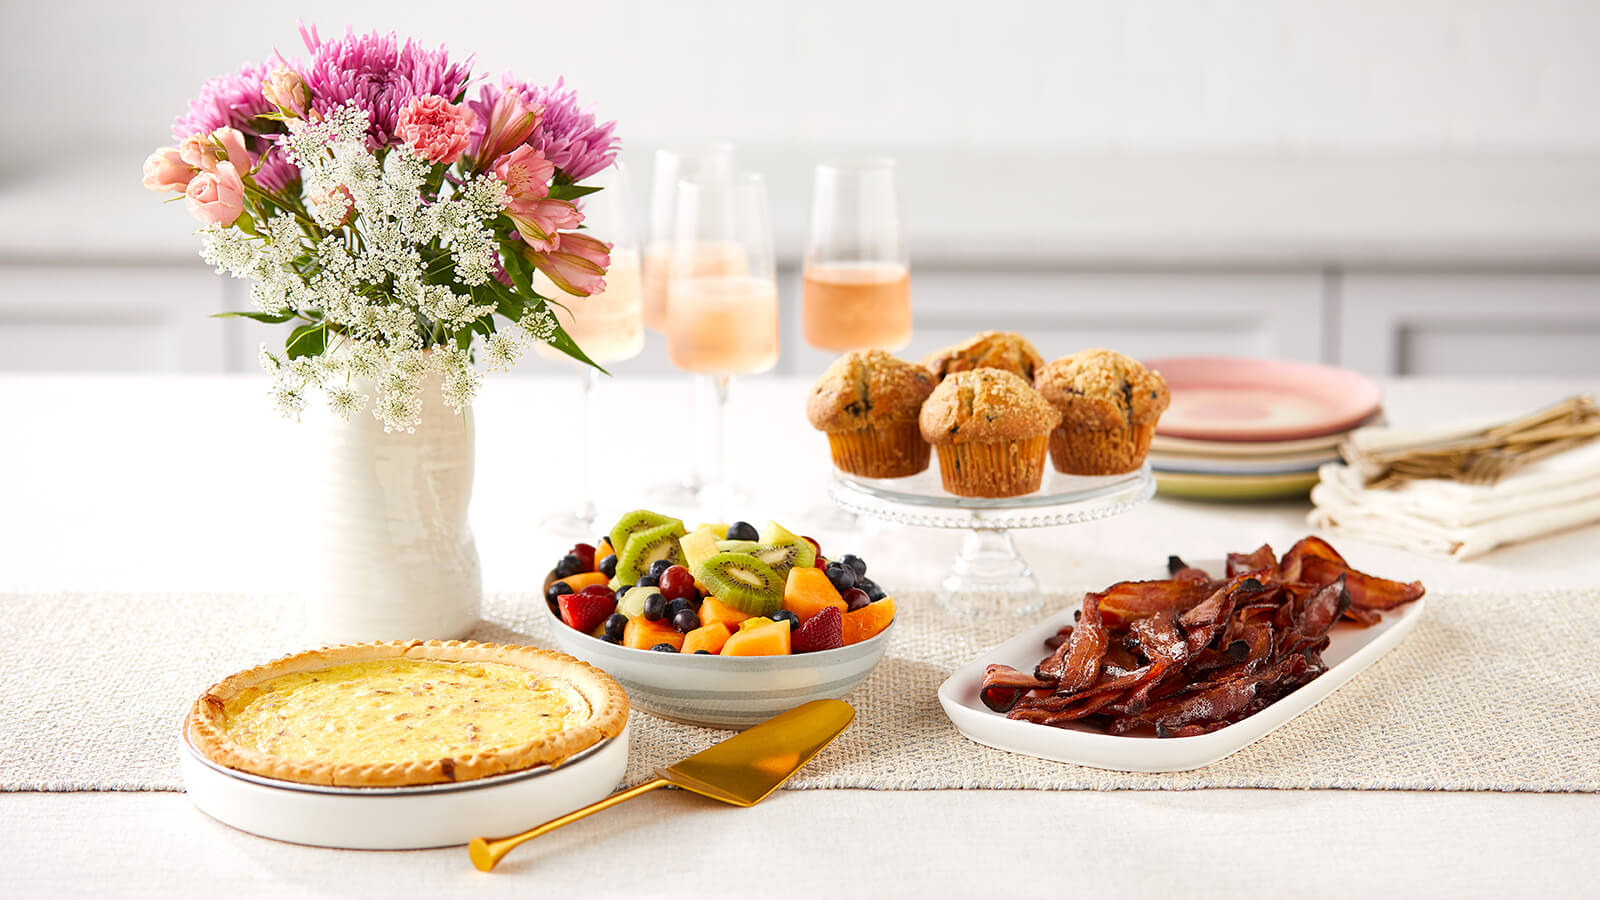 Mother's Day Brunch Meal with quiche, fruit, bacon, muffins and flowers